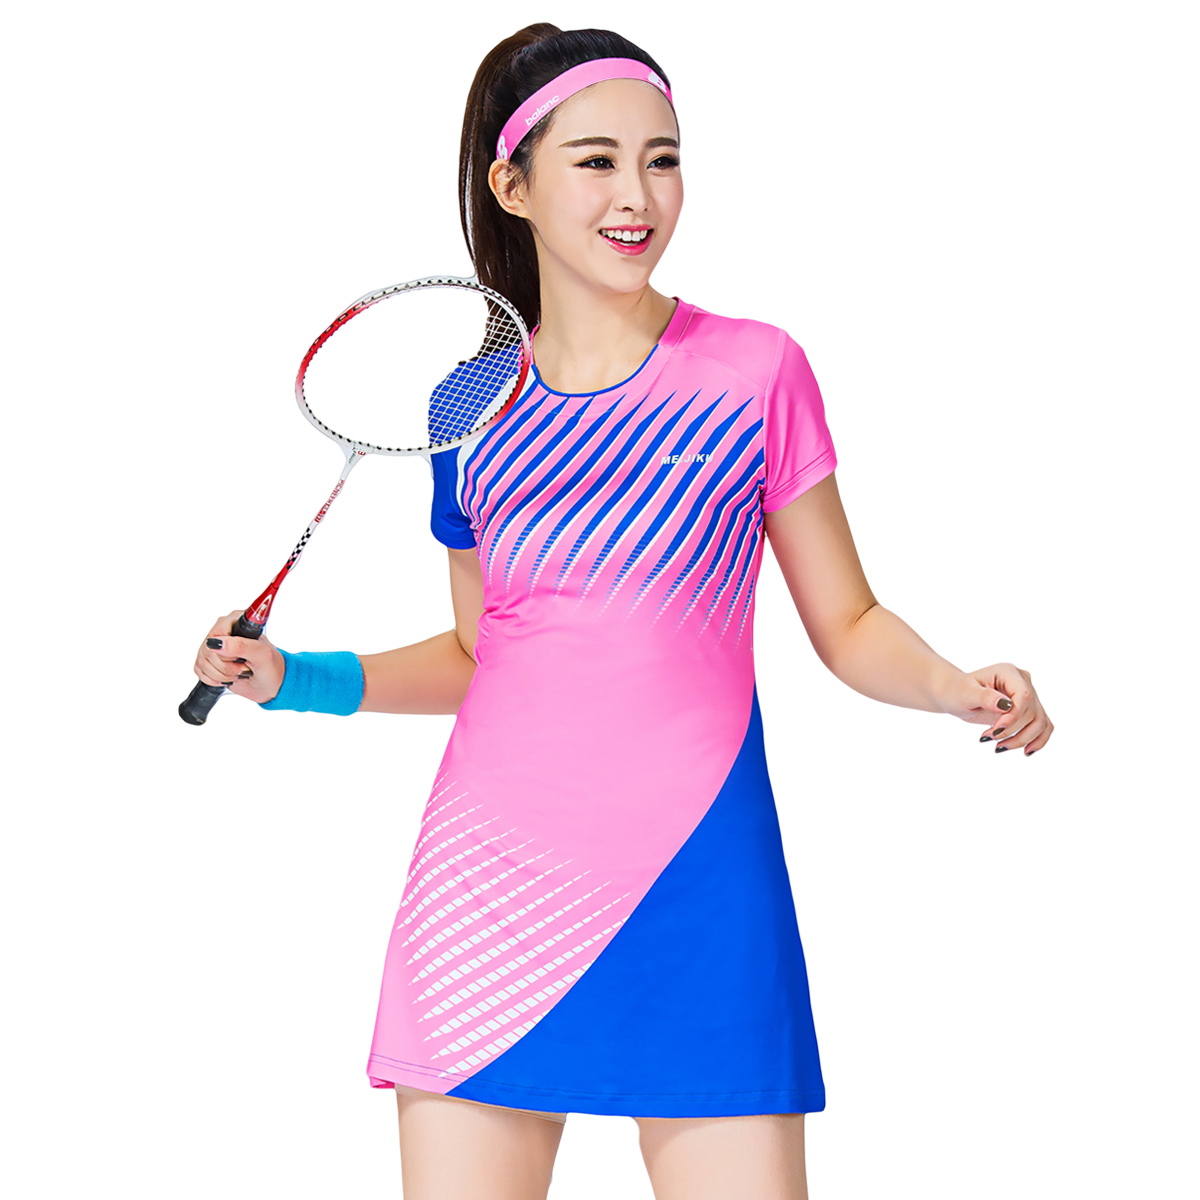 New Badminton Clothes Dresses Quick Dry Big Wardrobe Malfunction Cultivate Morality Tennis Dress with Safety Short Pants new winter 2015 women cotton padded clothes draw string of cultivate one s morality show thin fashionable